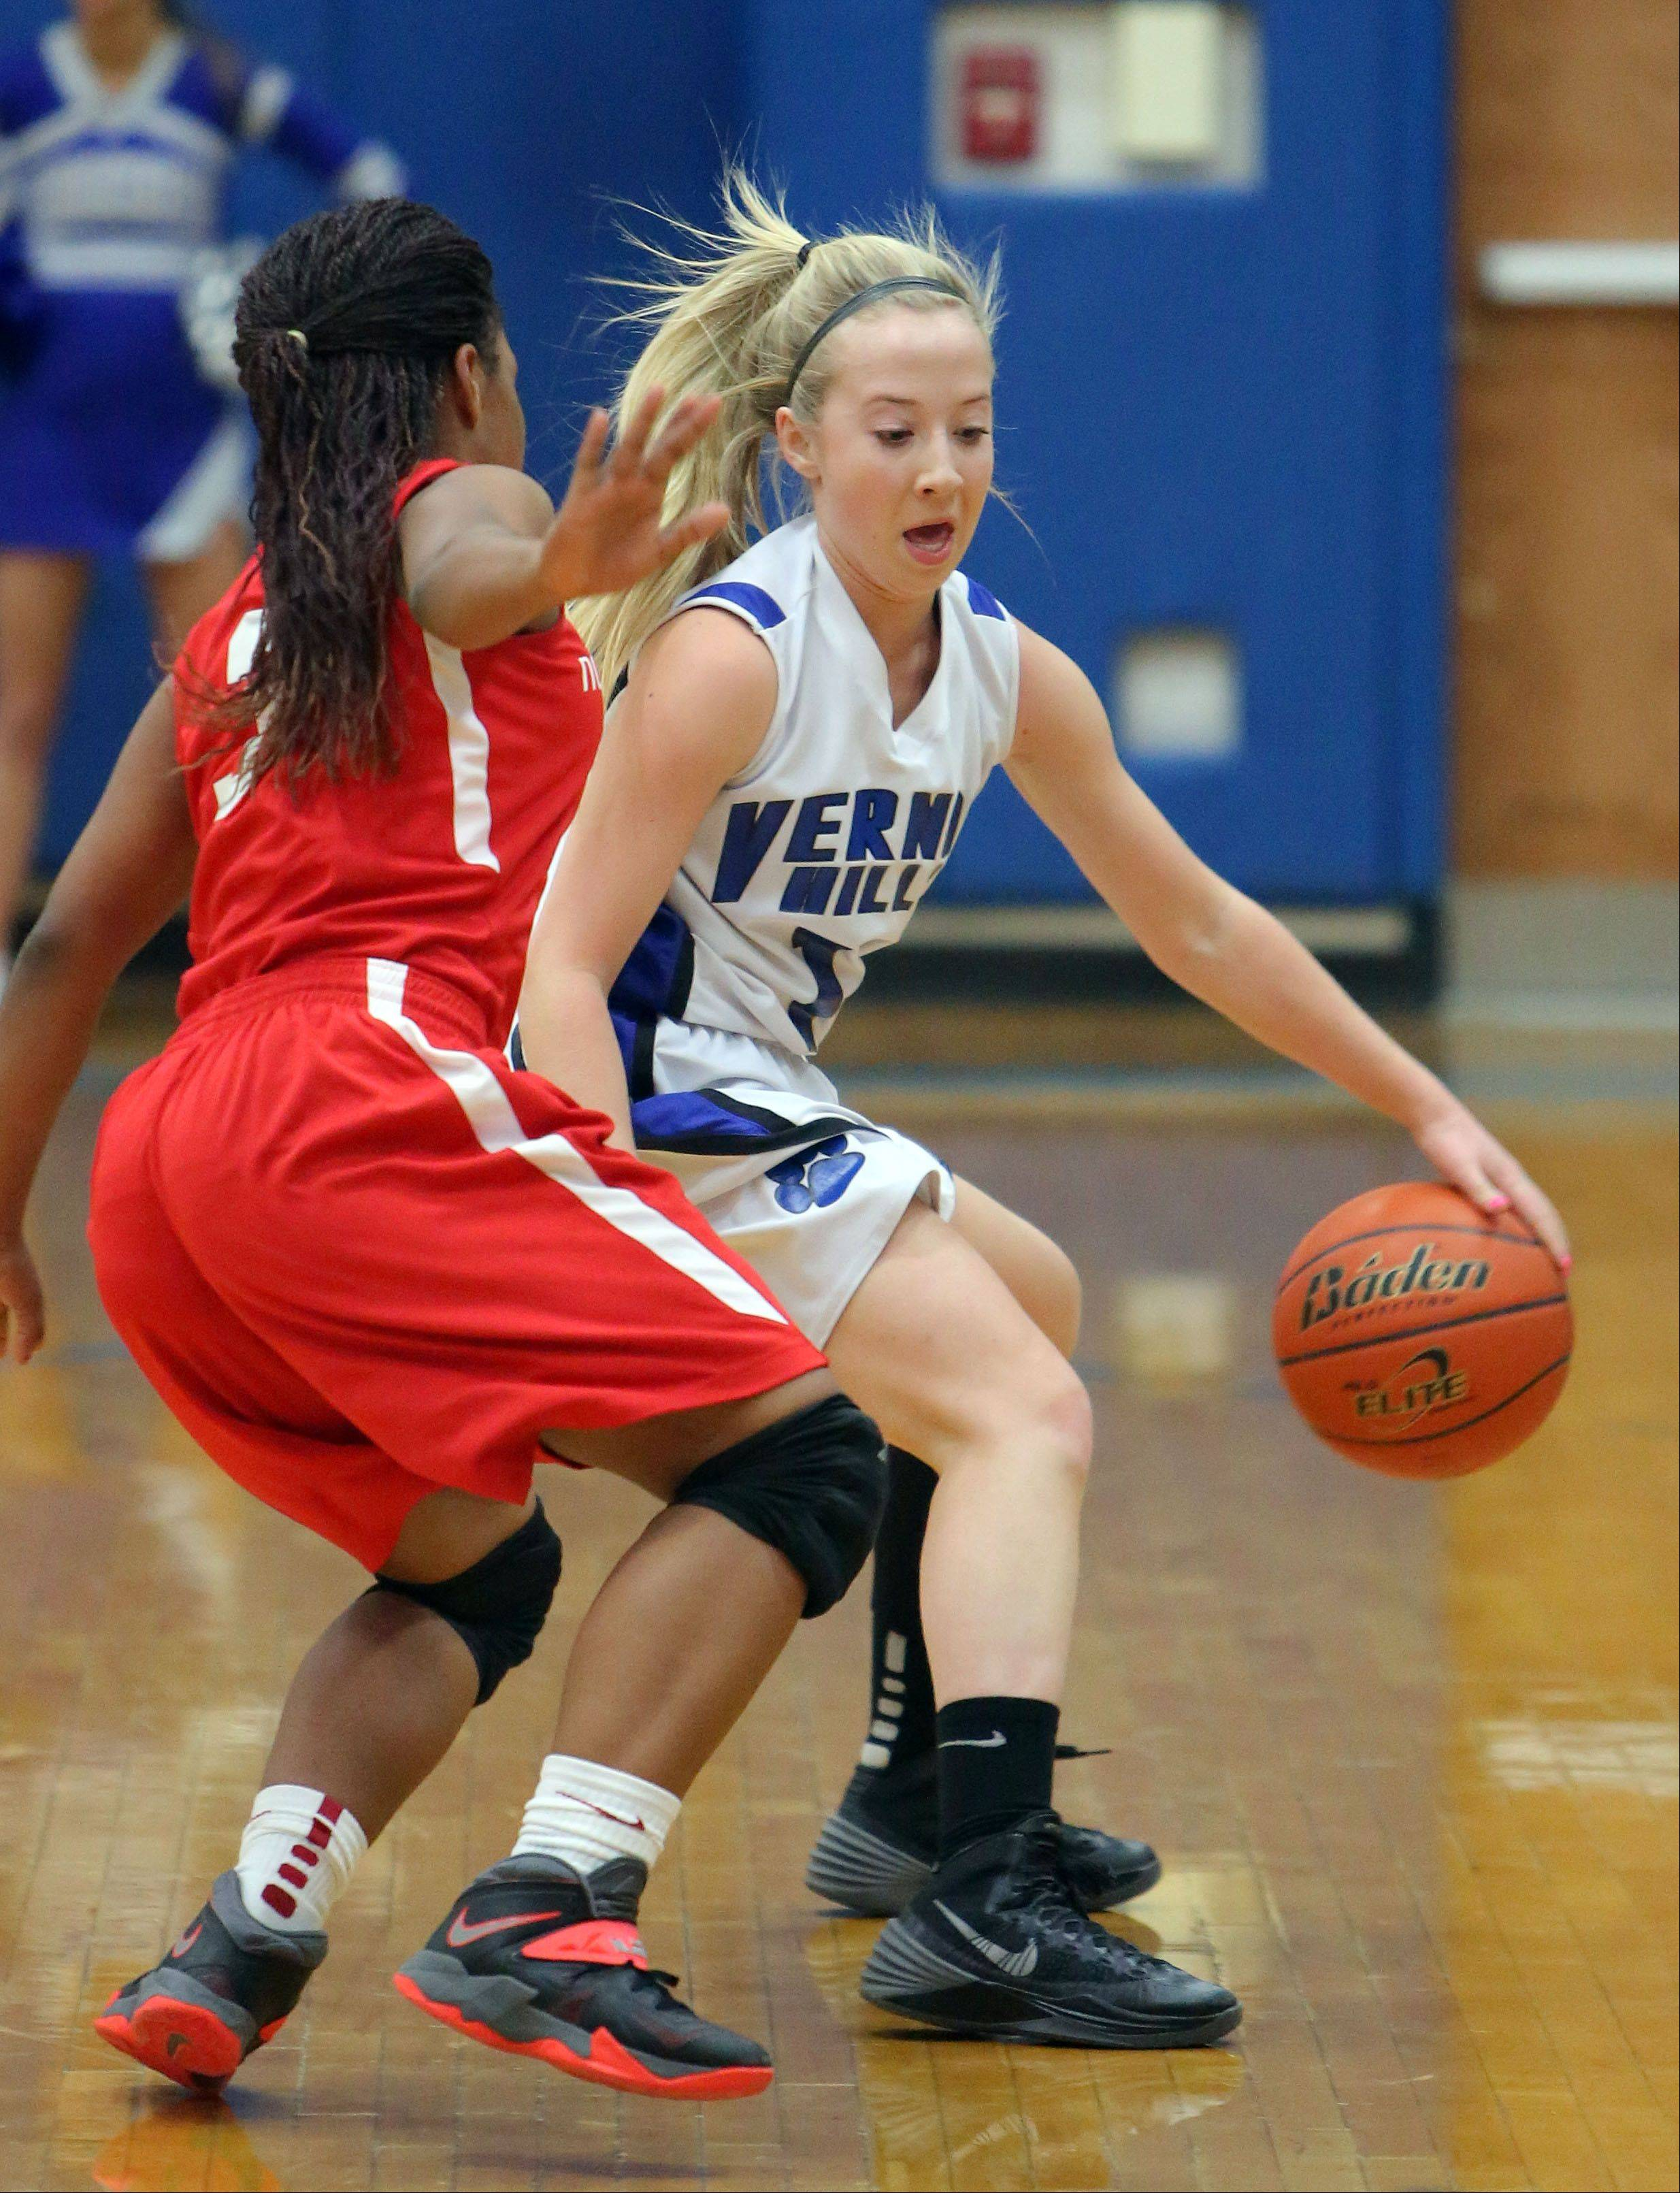 Vernon Hills' Haley Lieberman, right, drives on North Chicago's Alexis Means.